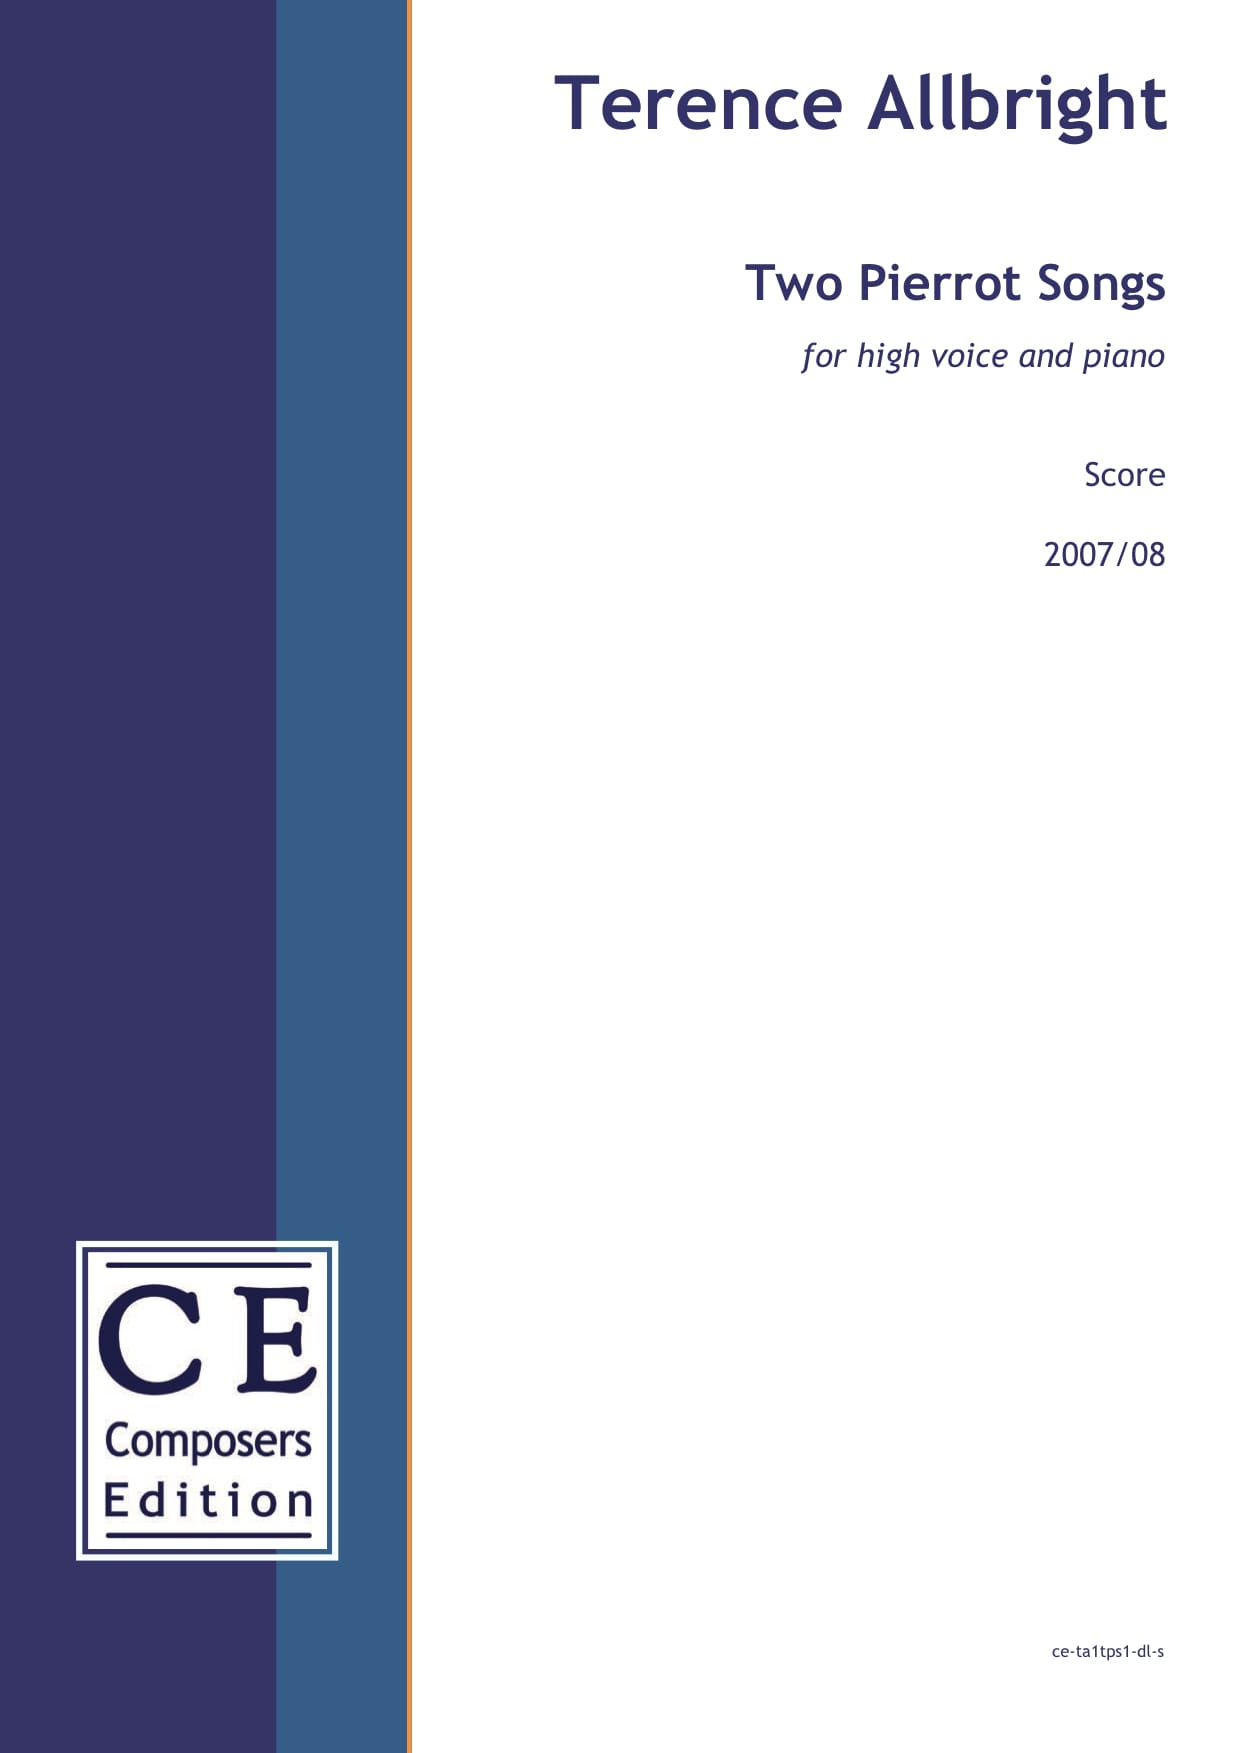 Terence Allbright: Two Pierrot Songs for high voice and piano